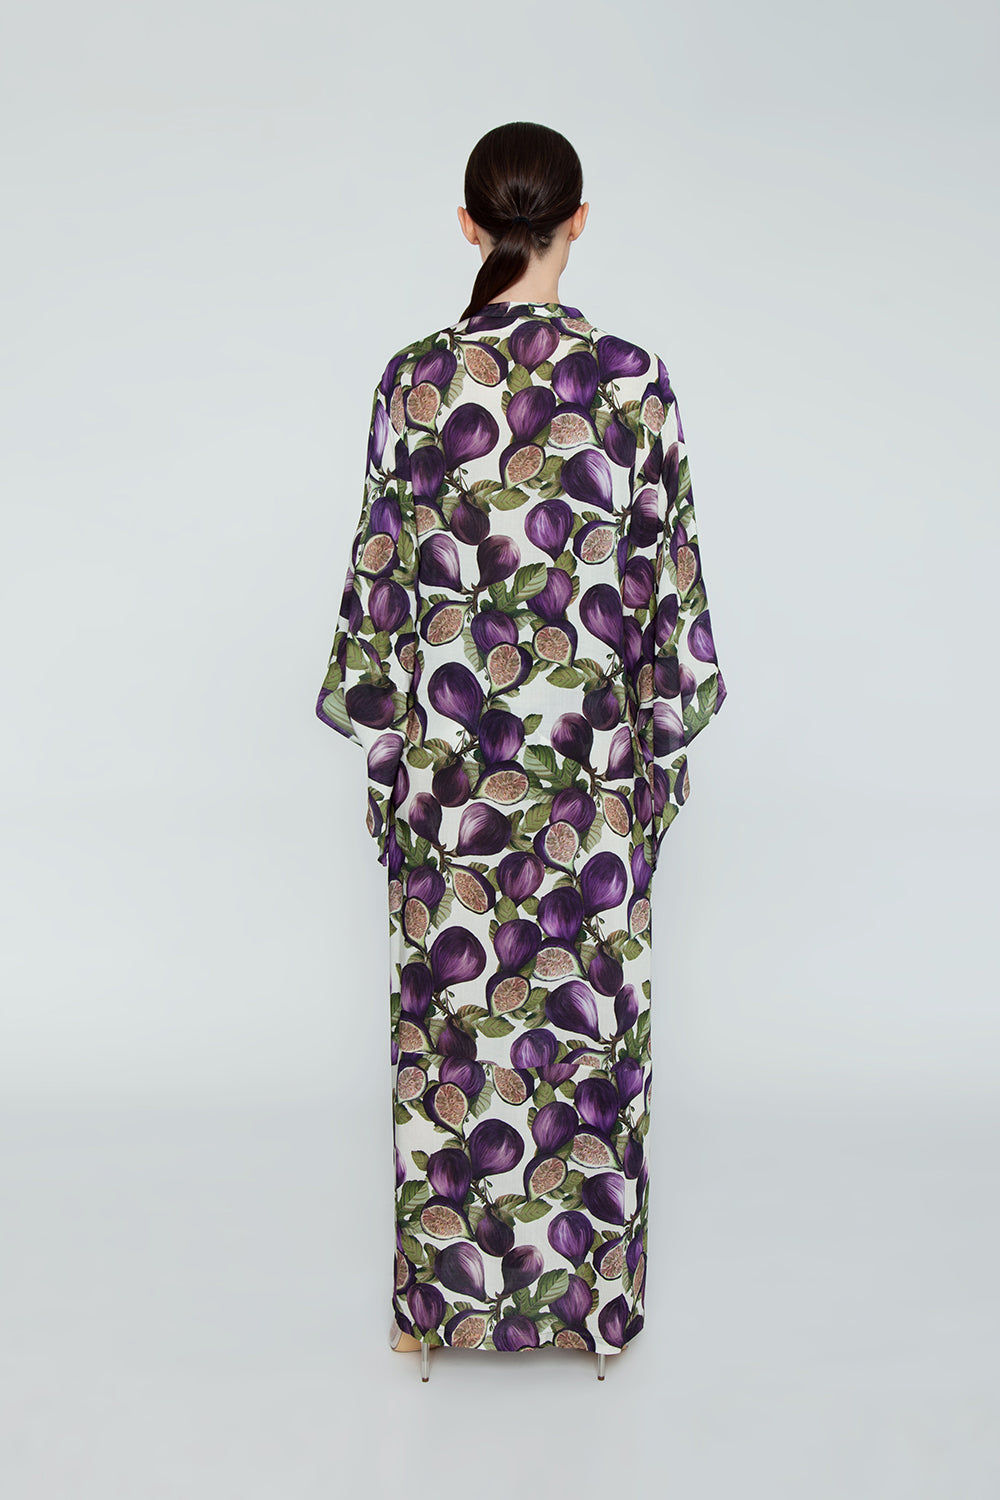 ADRIANA DEGREAS Silk Long Robe Cover-Up - Fig Purple Print Cover Up | Fig Purple Print|Adriana Degreas Long Robe - Fig Purple Print   Long sleeve robe Floor length robe Tie waist detail  Back View